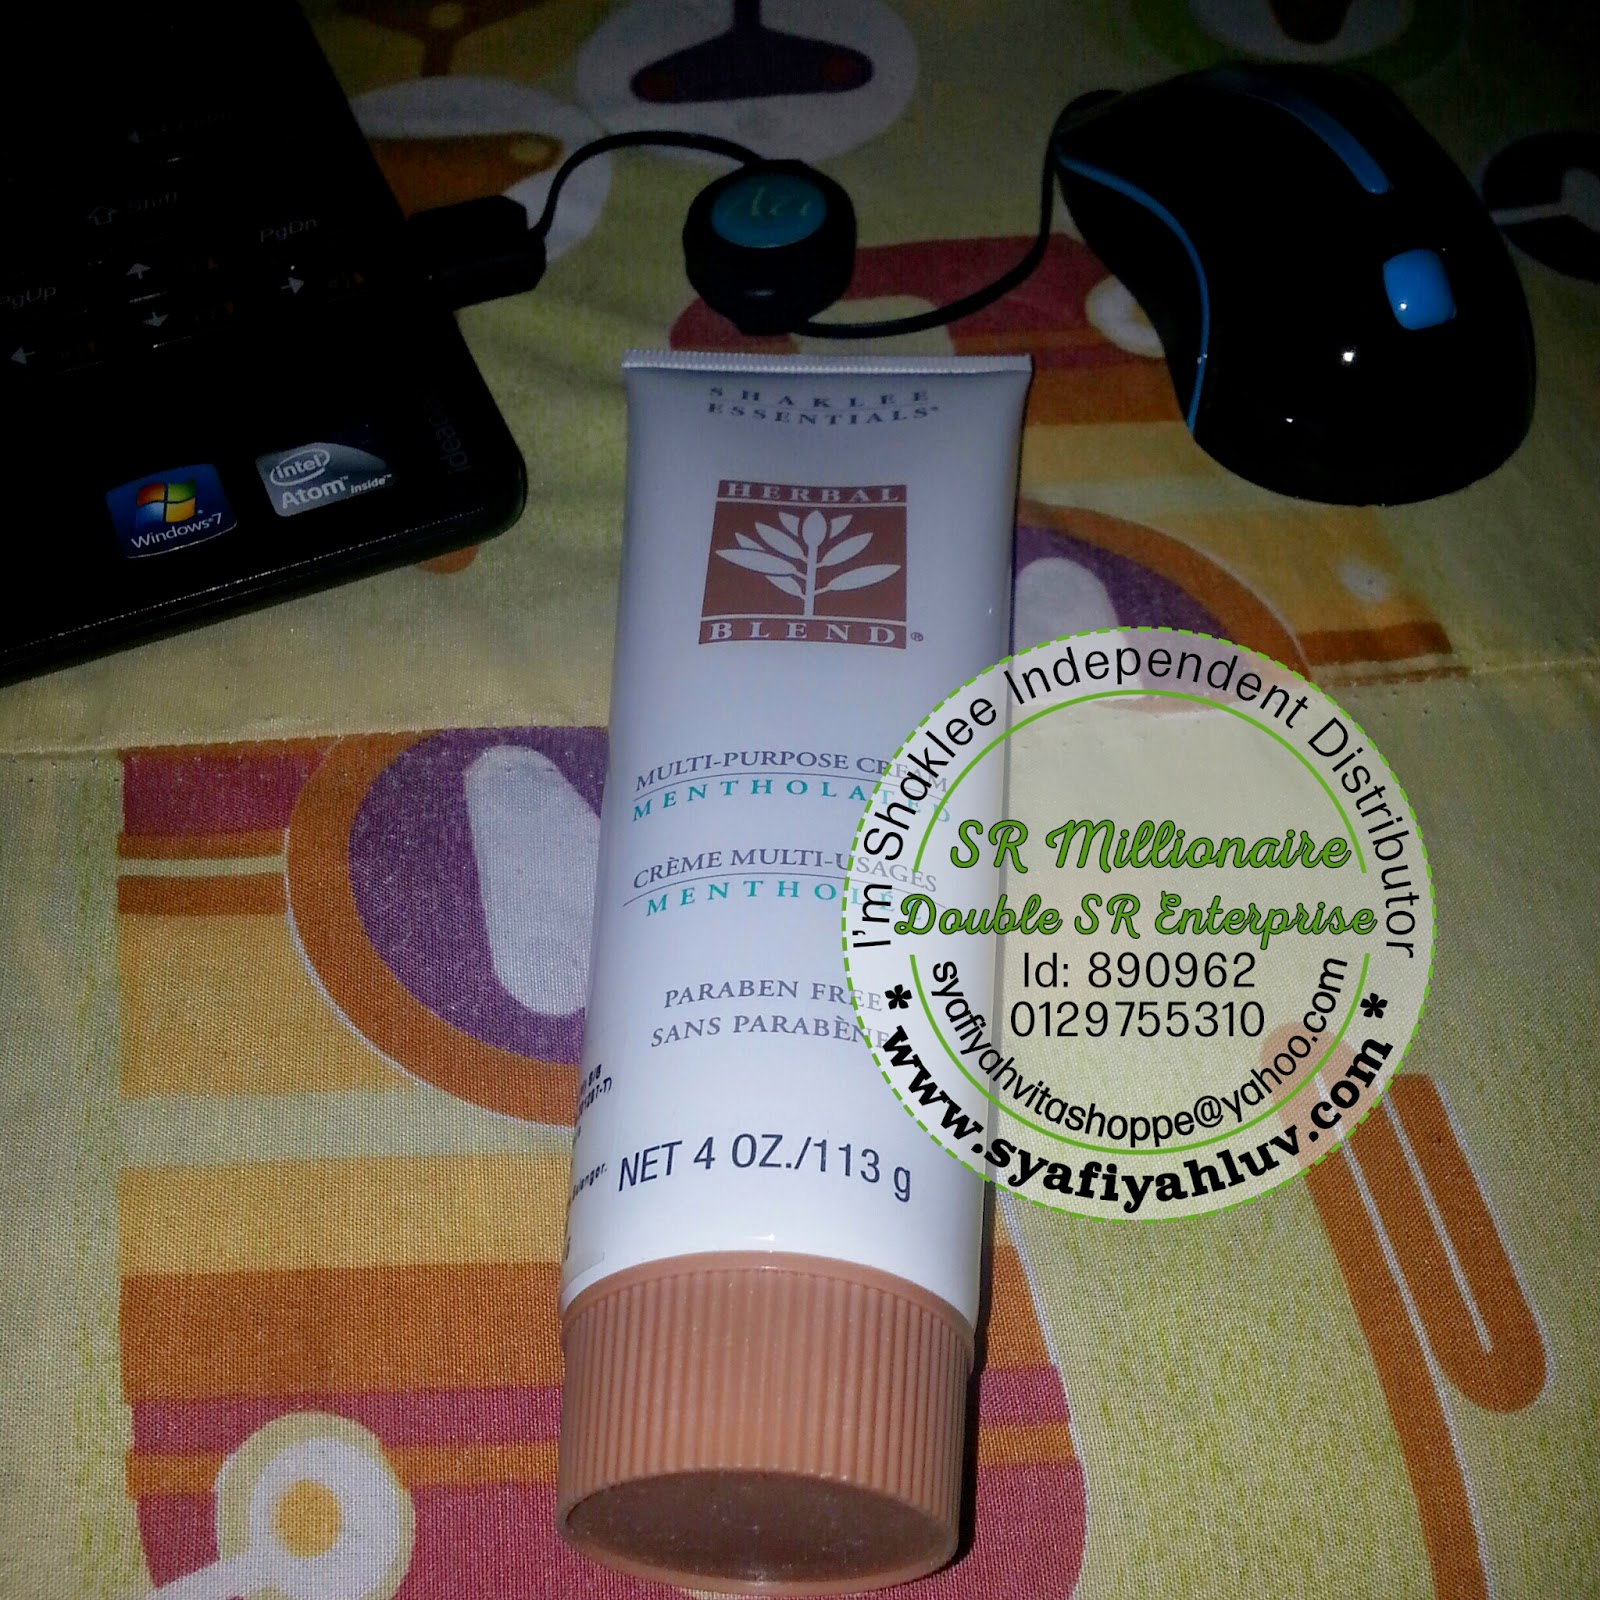 multipurposed cream